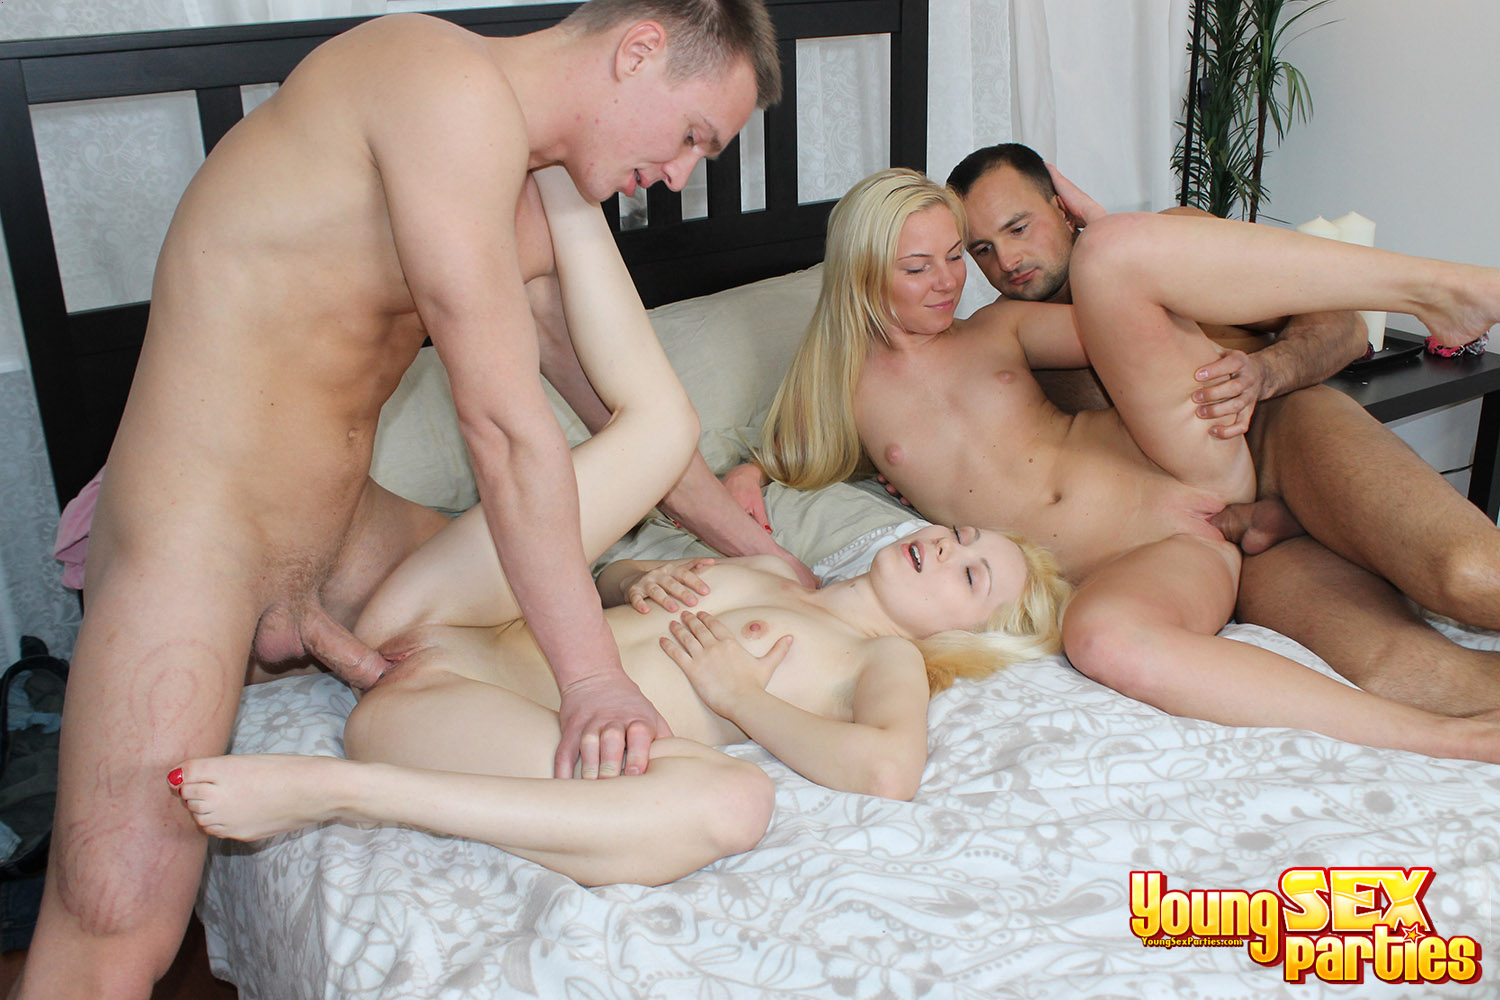 Free hq young sex parties pics